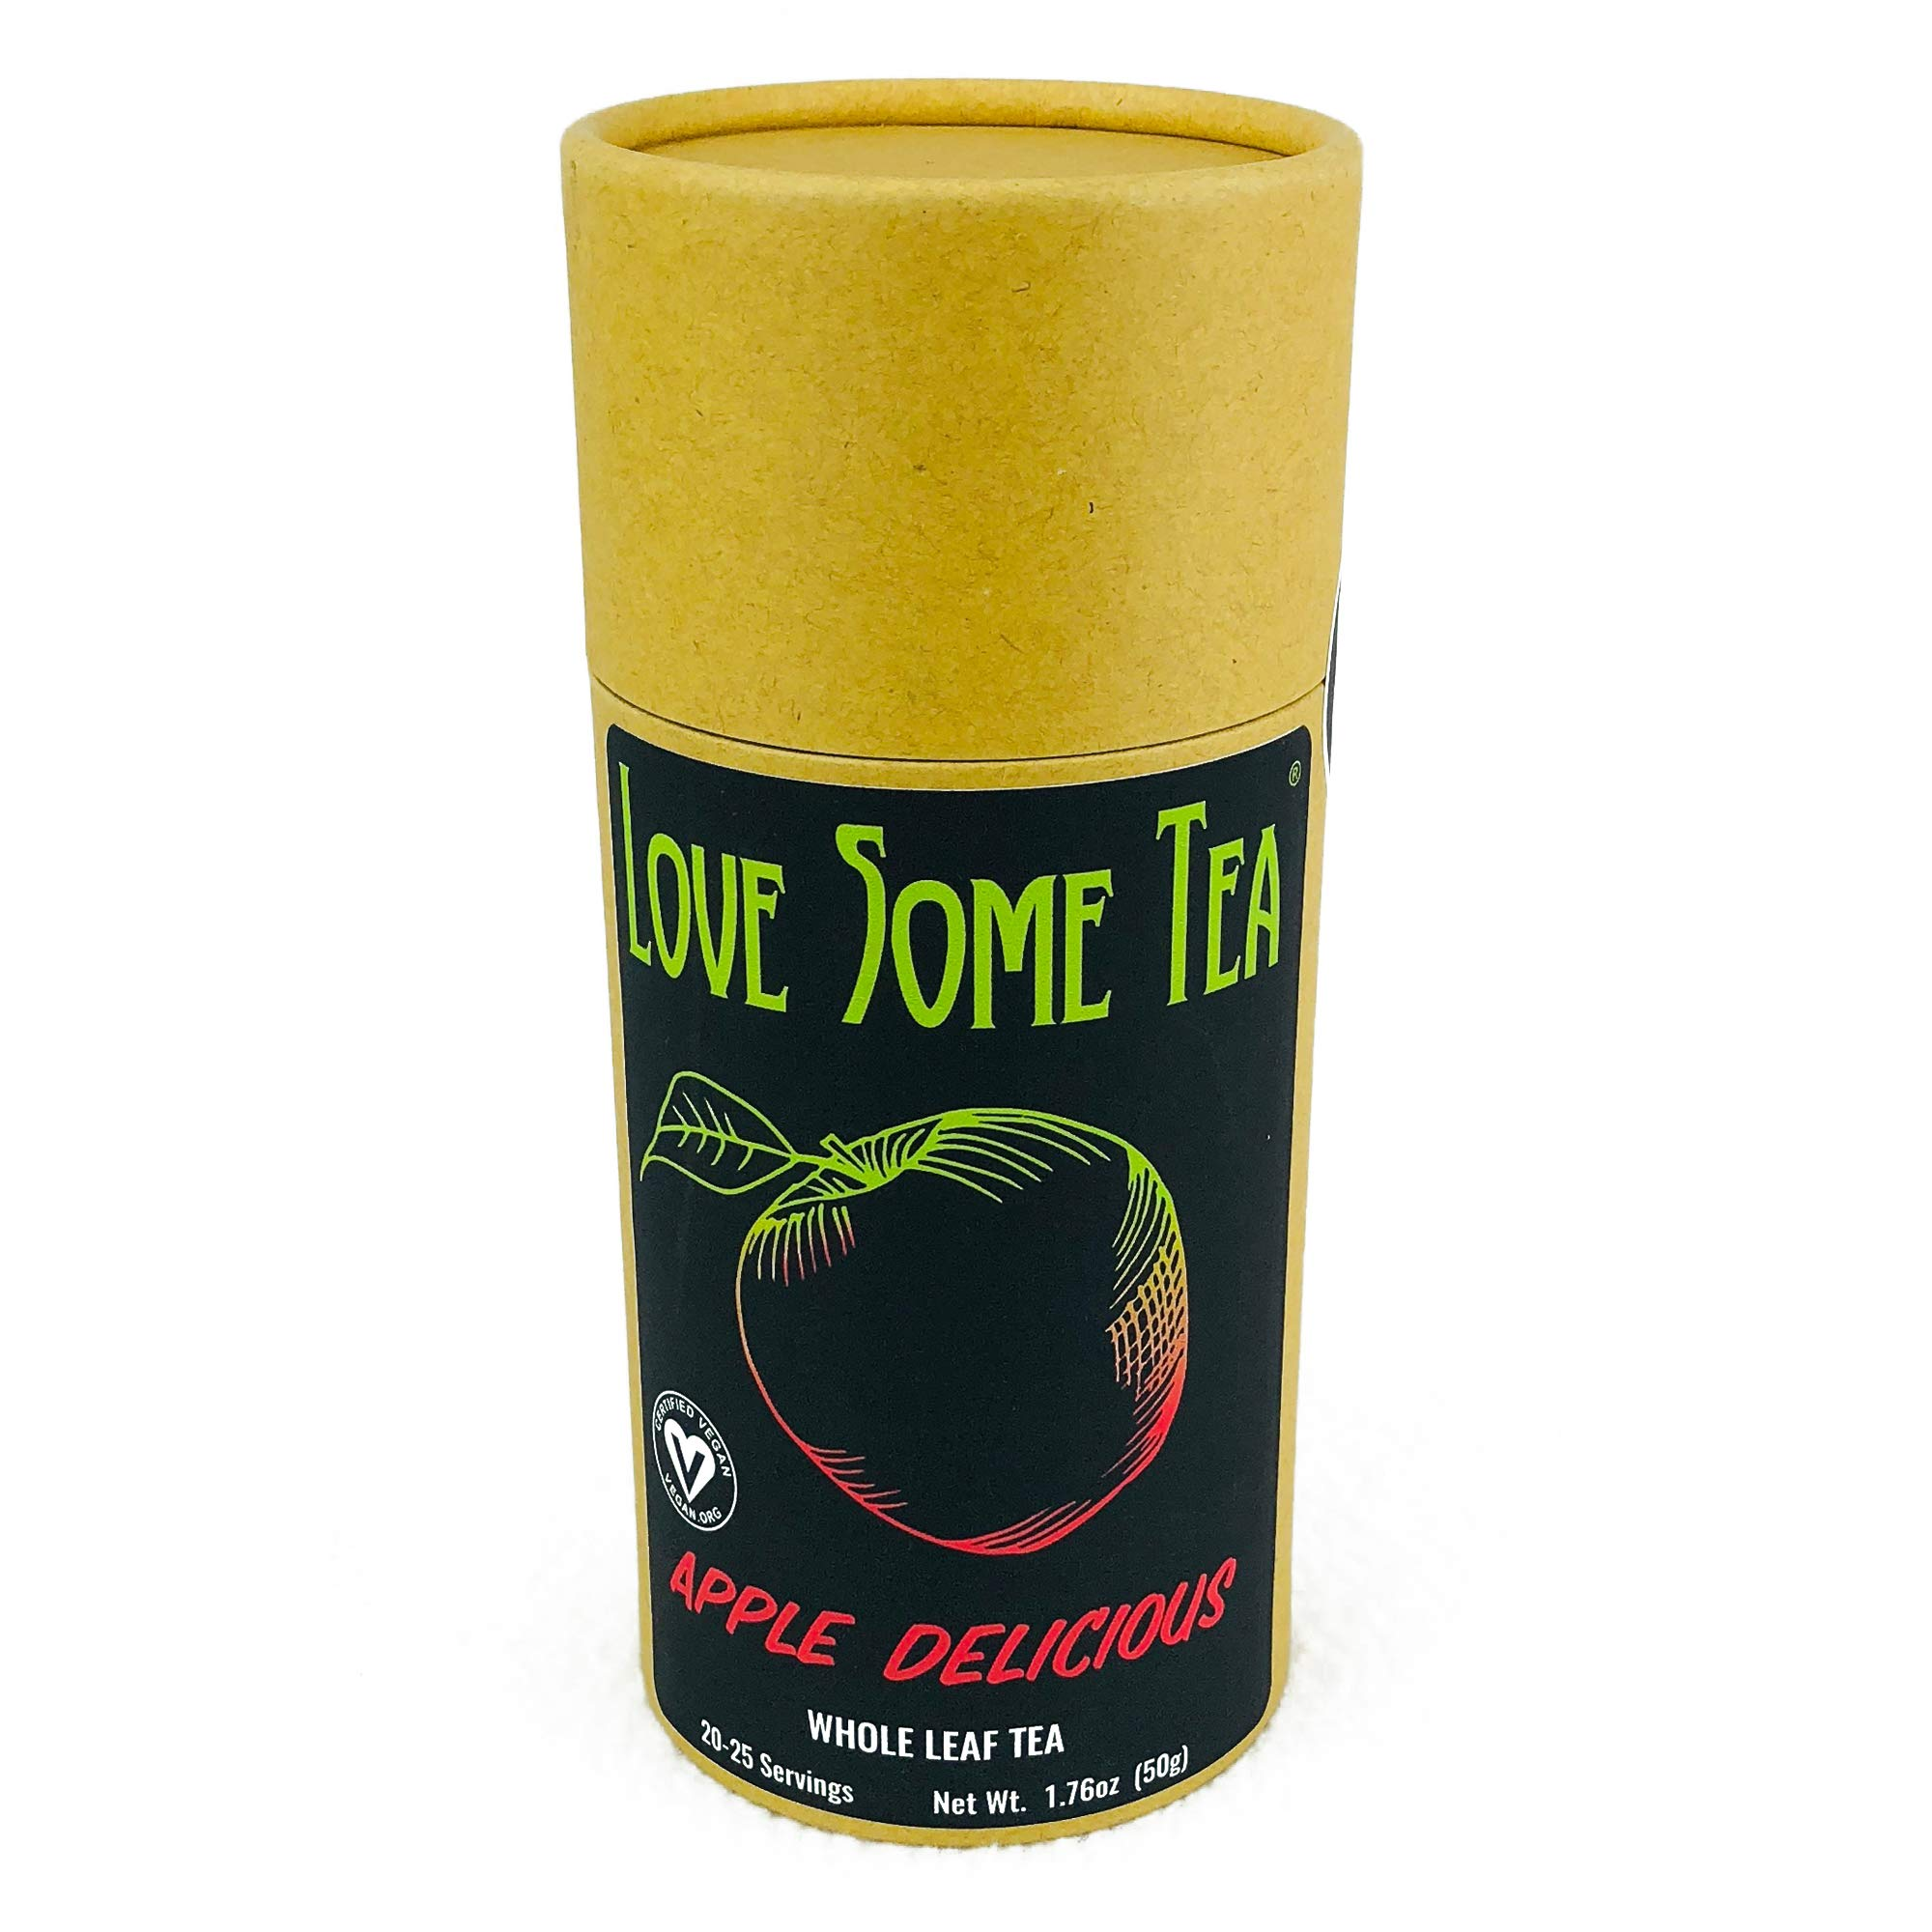 Apple Delicious Whole Leaf Tea   Love Some Tea   50 g.   Rare wild tea harvested in the remote mountains of Thailand